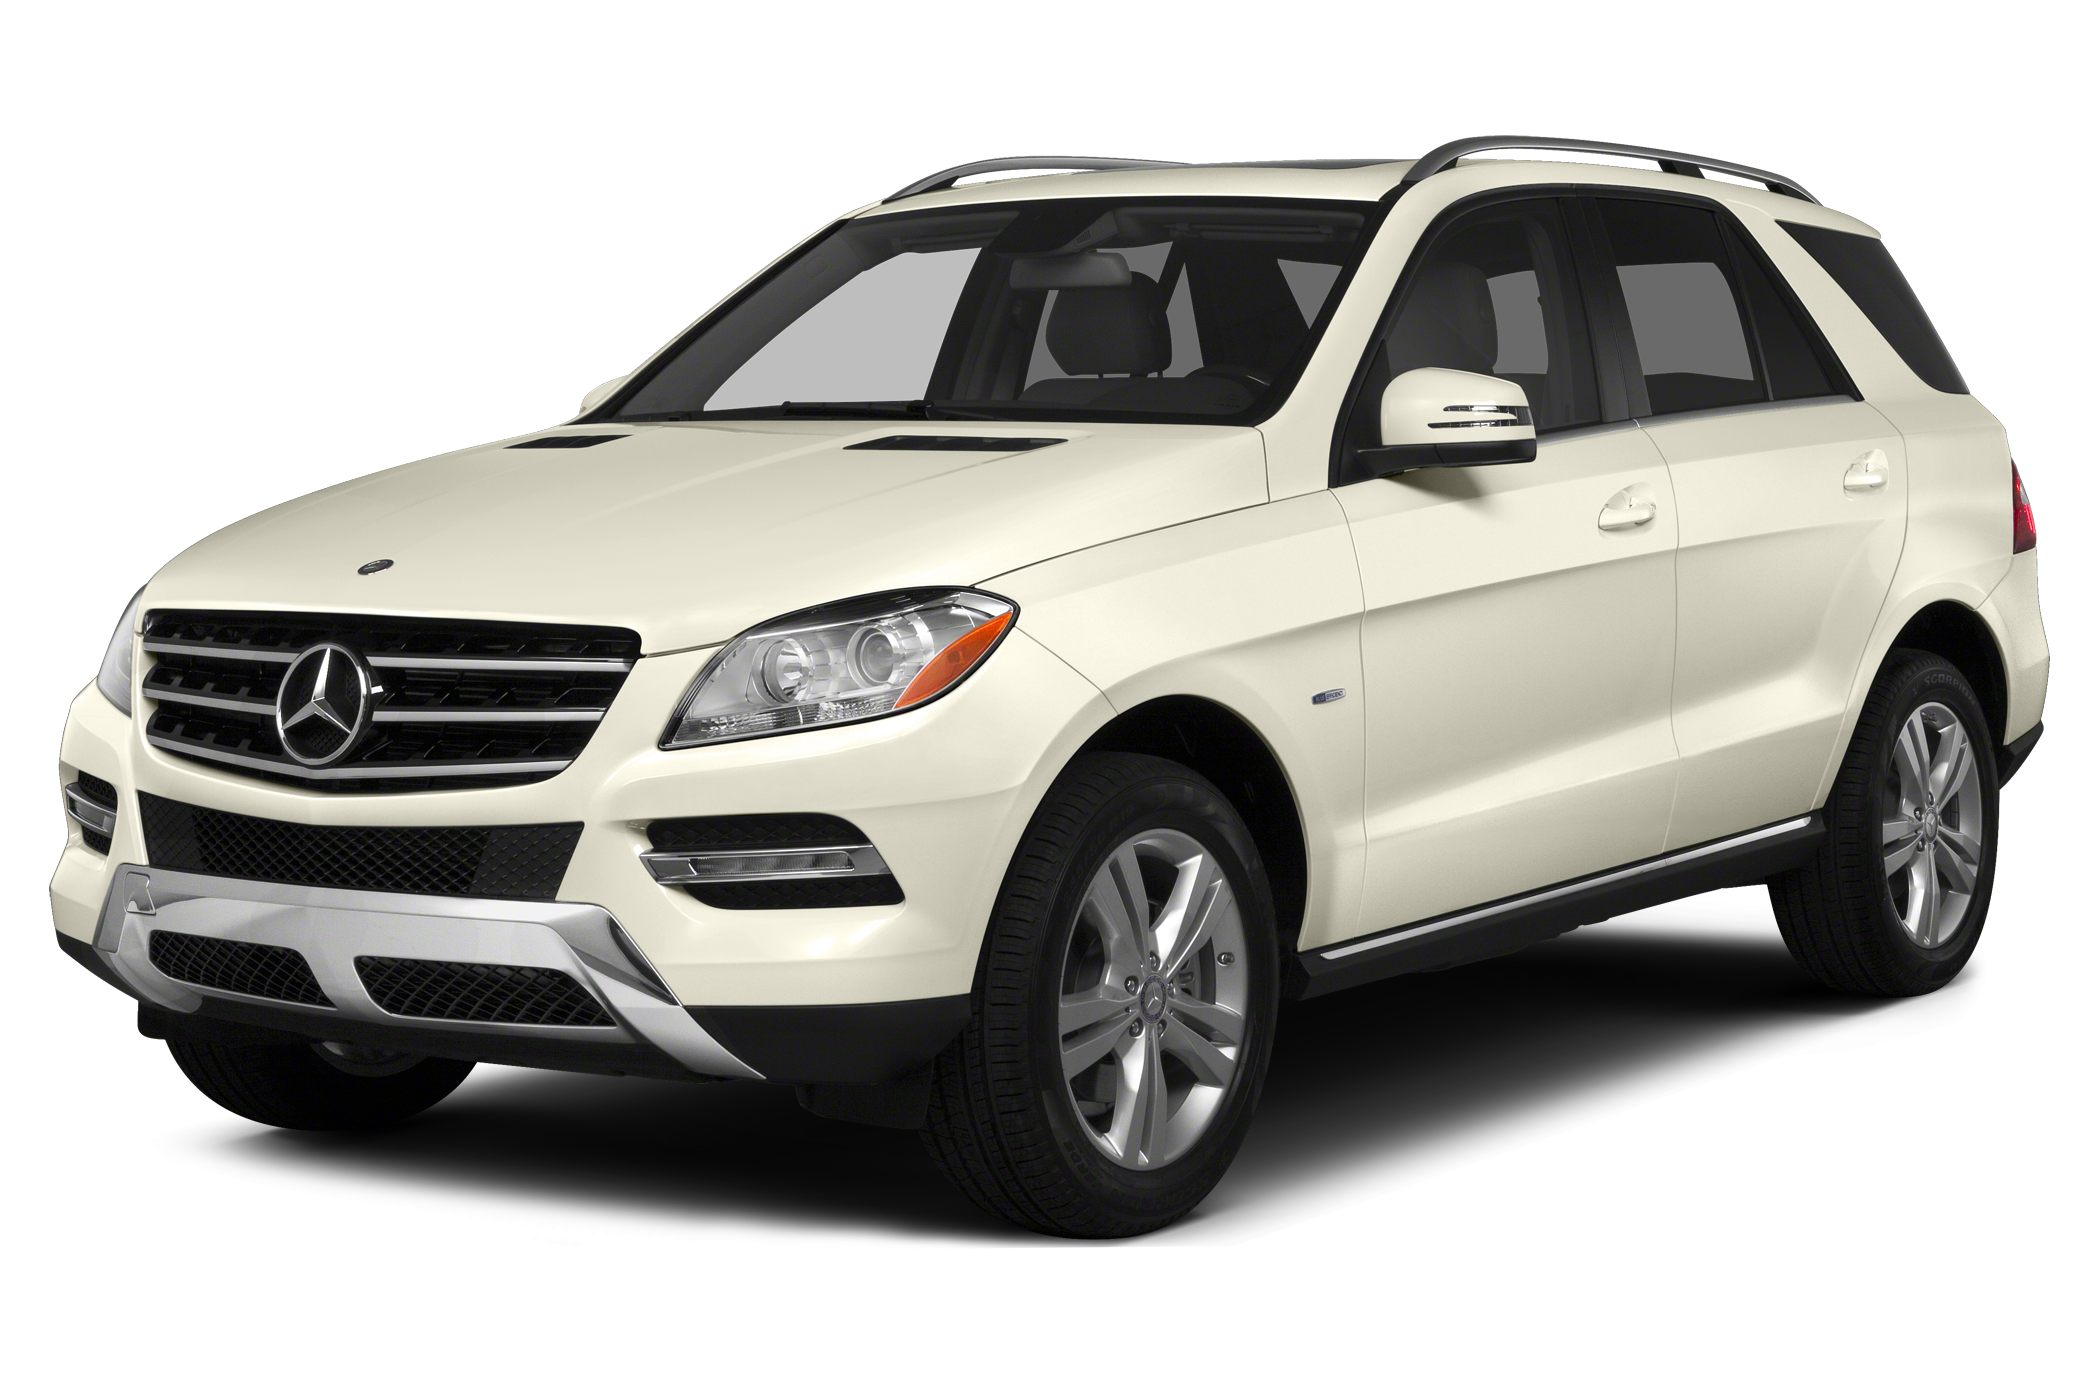 Mercedes Benz Ml350 History >> Mercedes Benz Ml350 Overview Generations Carsdirect